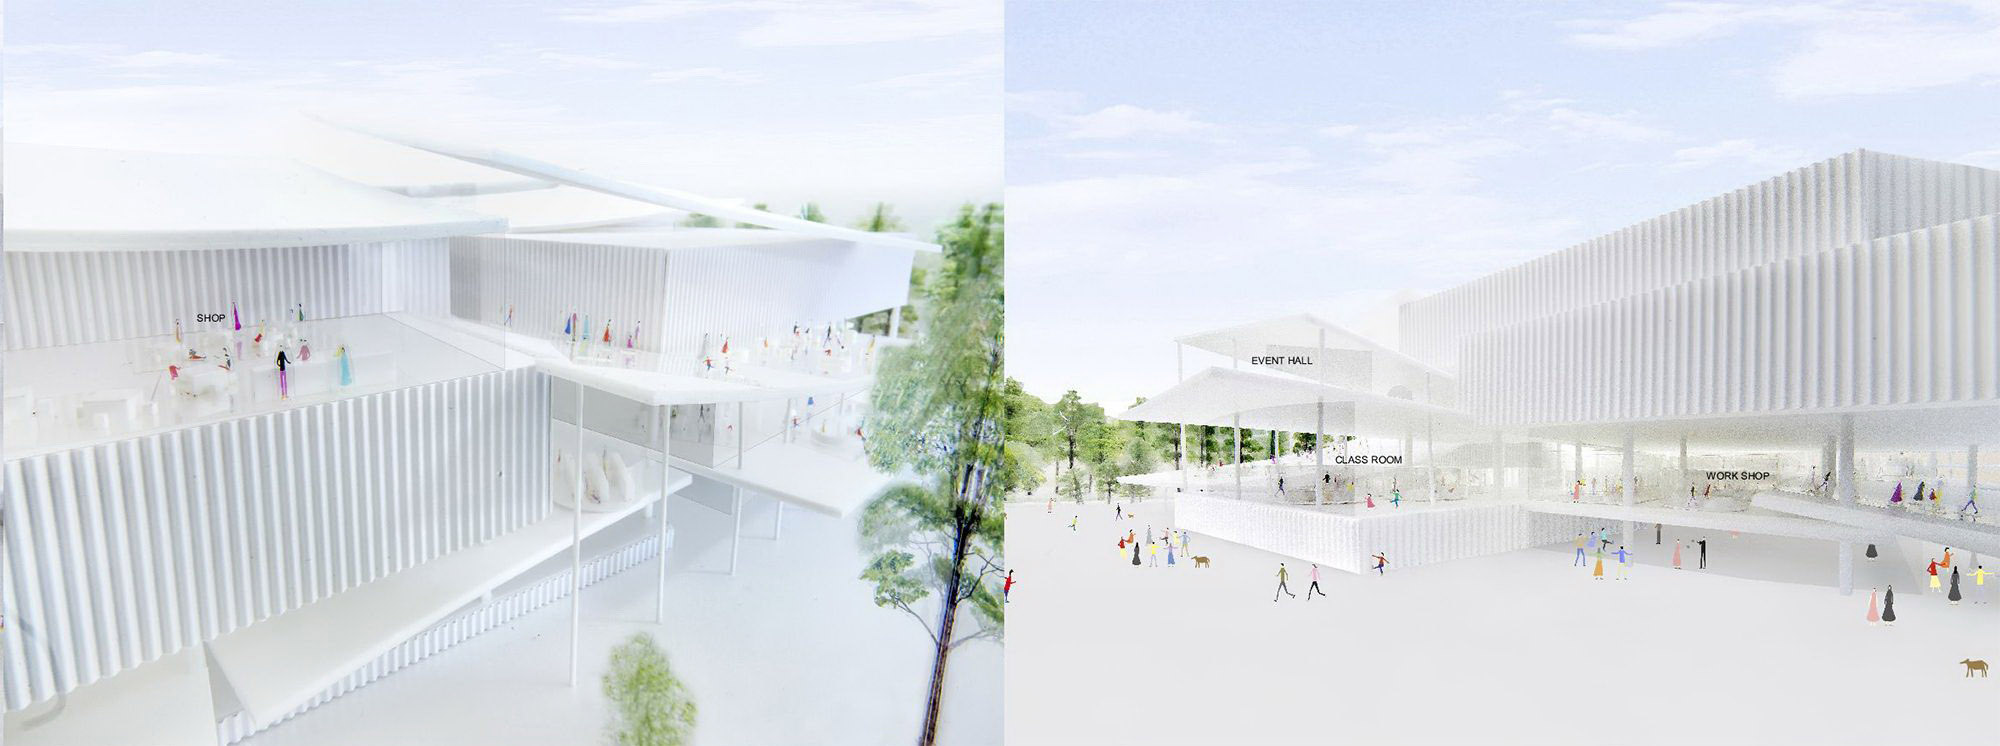 mm_new national gallery-ludwig museum design by SANAA_17